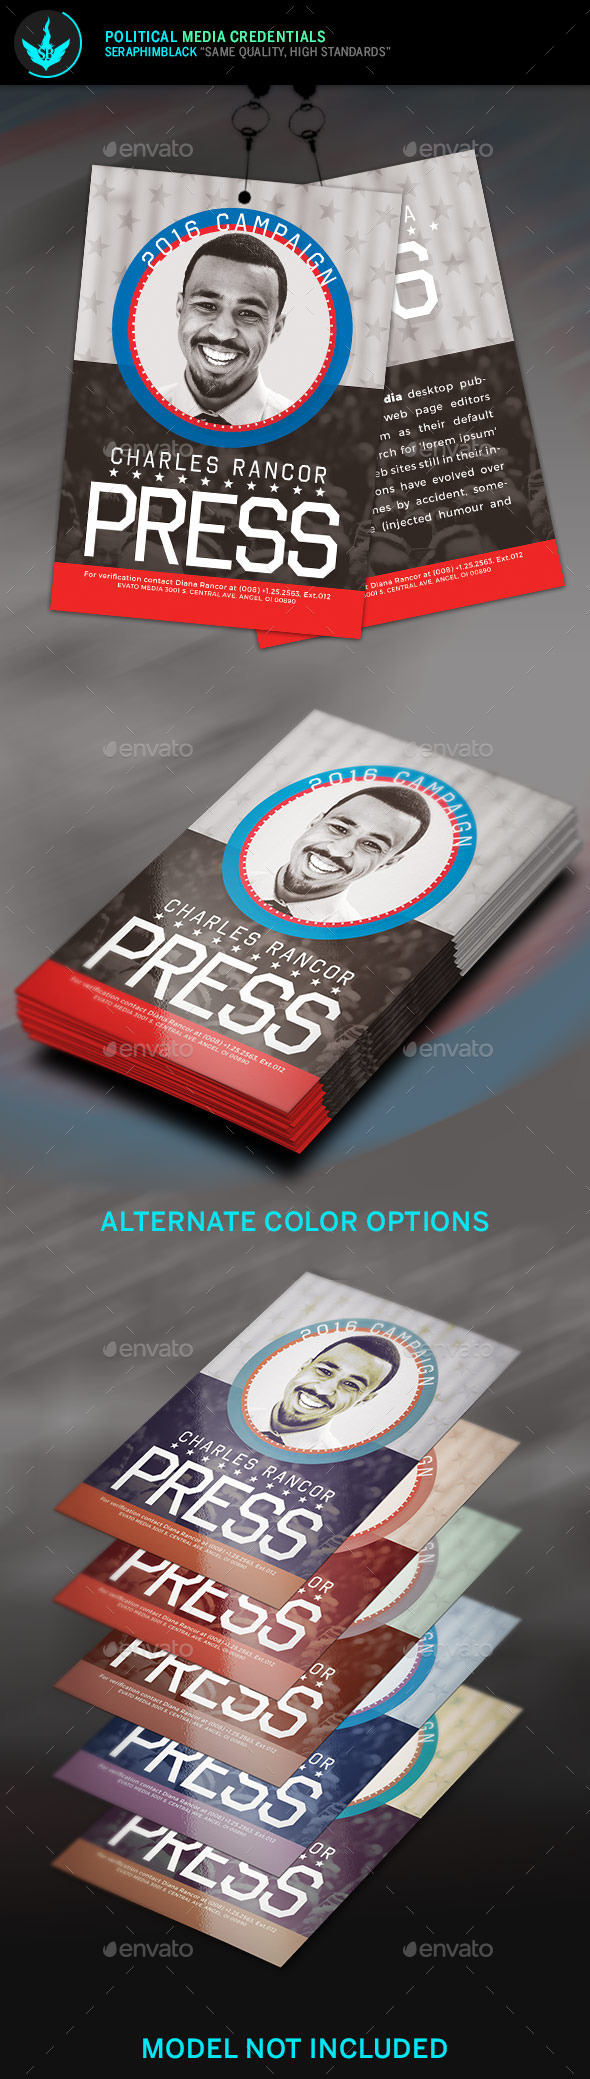 media pass template - political media credentials template by seraphimblack